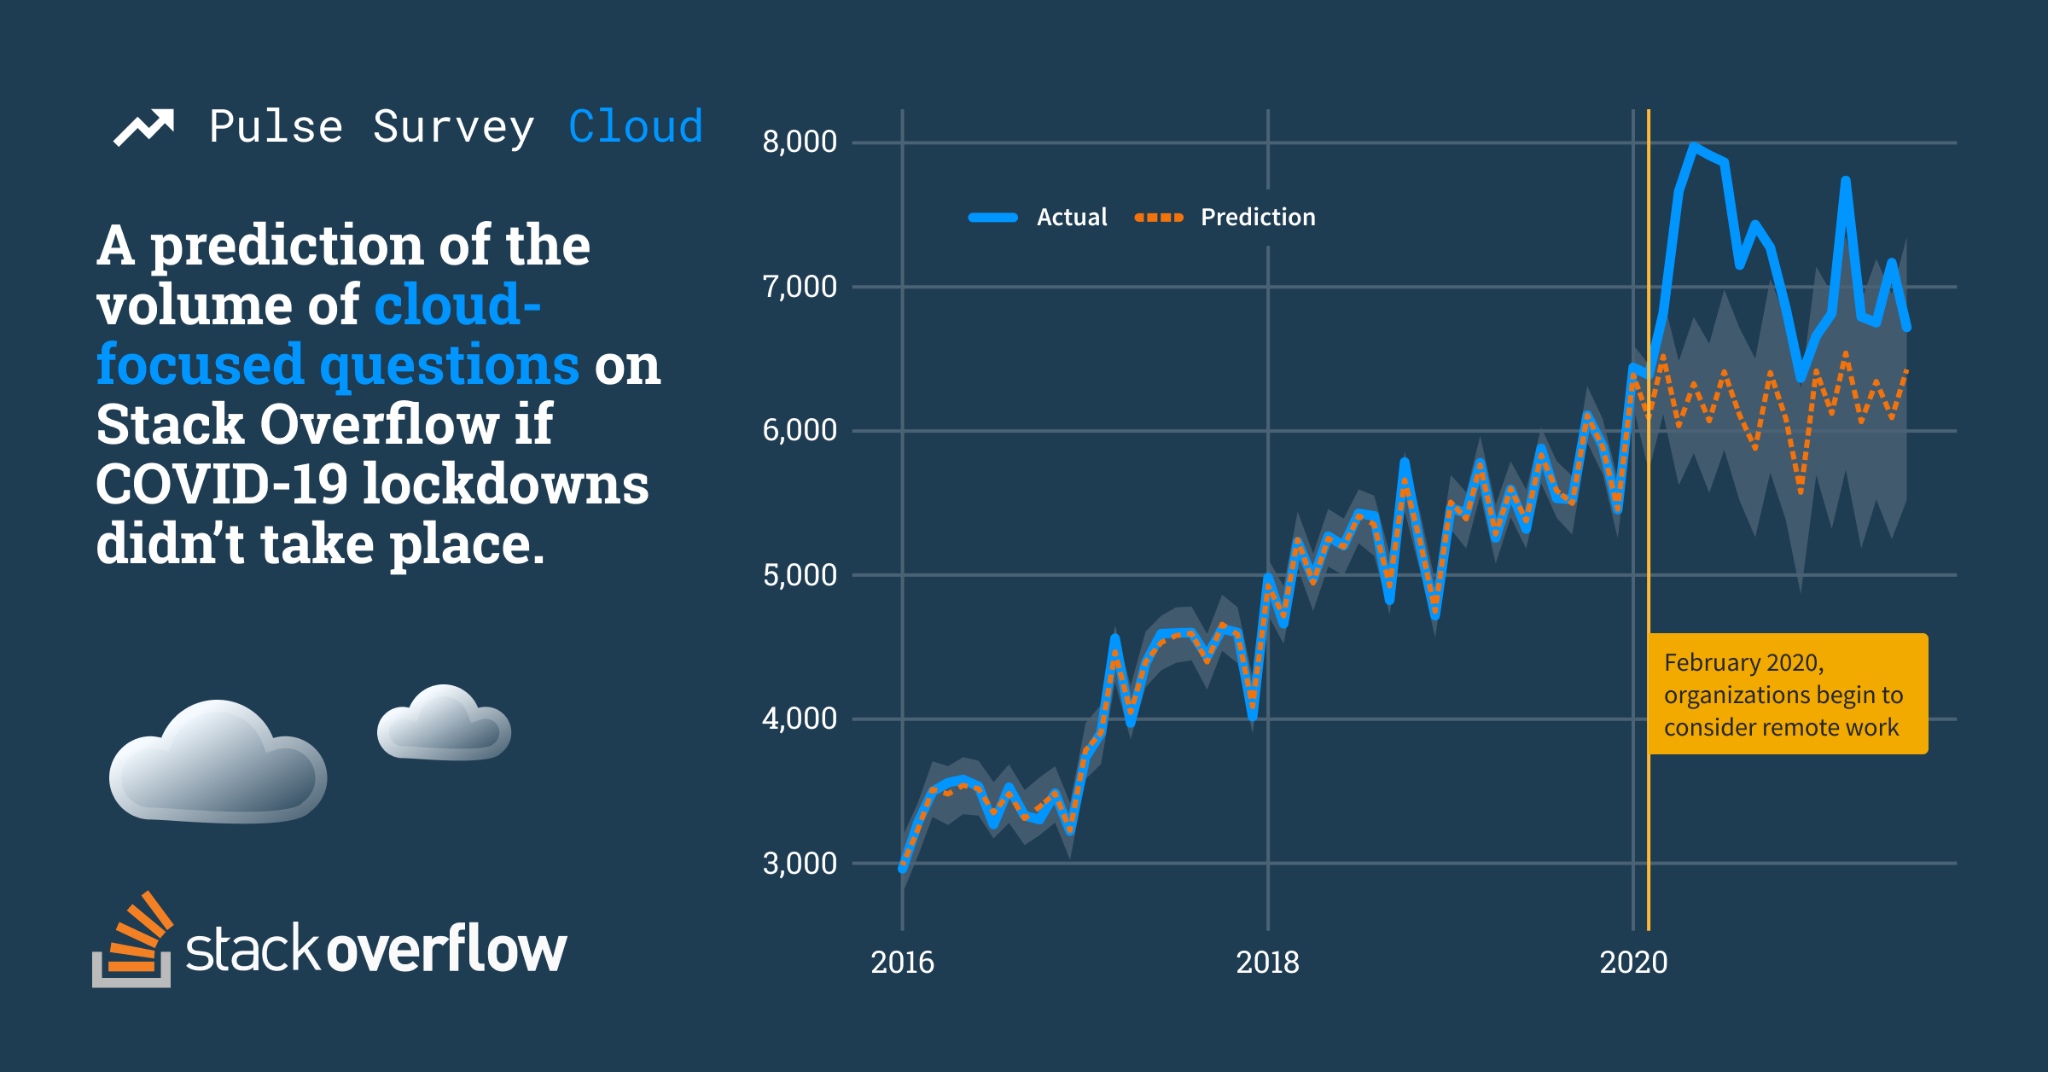 Line chart showing growth of cloud-related questions asked on Stack Overflow from 2016 to September 2021 with a separate line prediction questions asked after February 2020 if COVID-19 lockdowns didn't occur. After February 2020, we see the actual values have a dramatic spike reach close to 8,000, while the predicted value remains steady at around 6,000.